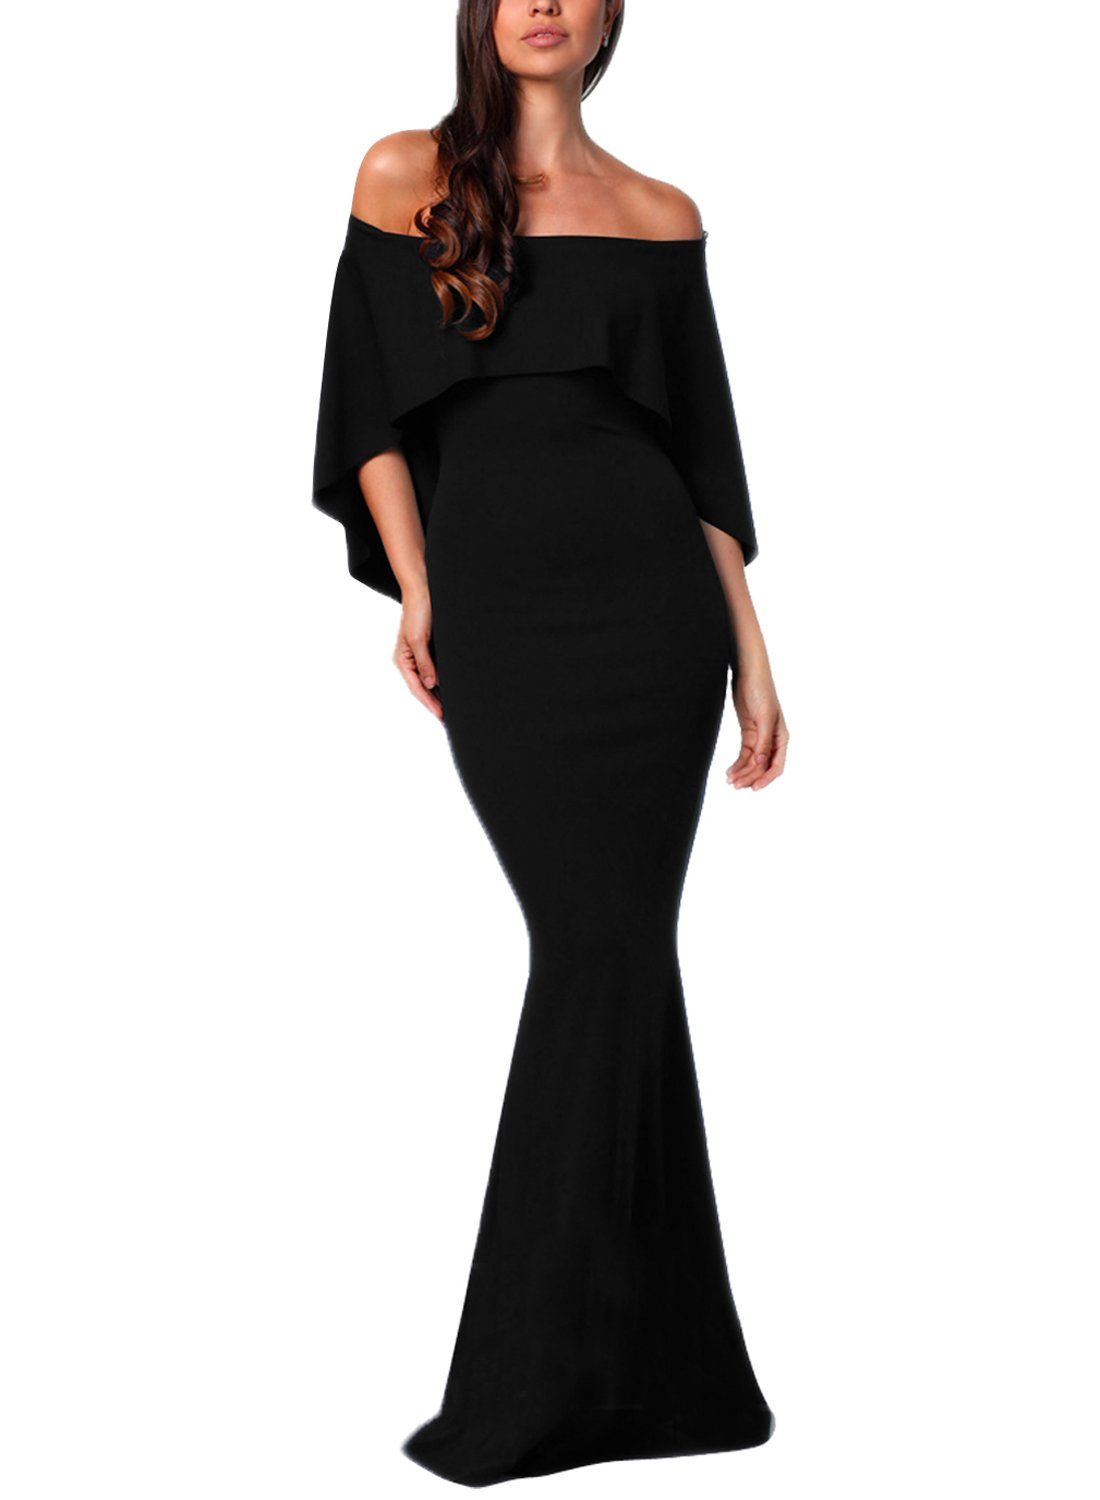 Dokotoo Womens Fashion Elegant Formal Off Shoulder Ruffles Short Sleeve Gown Mermaid Evening Prom Party Long Dress Black Medium